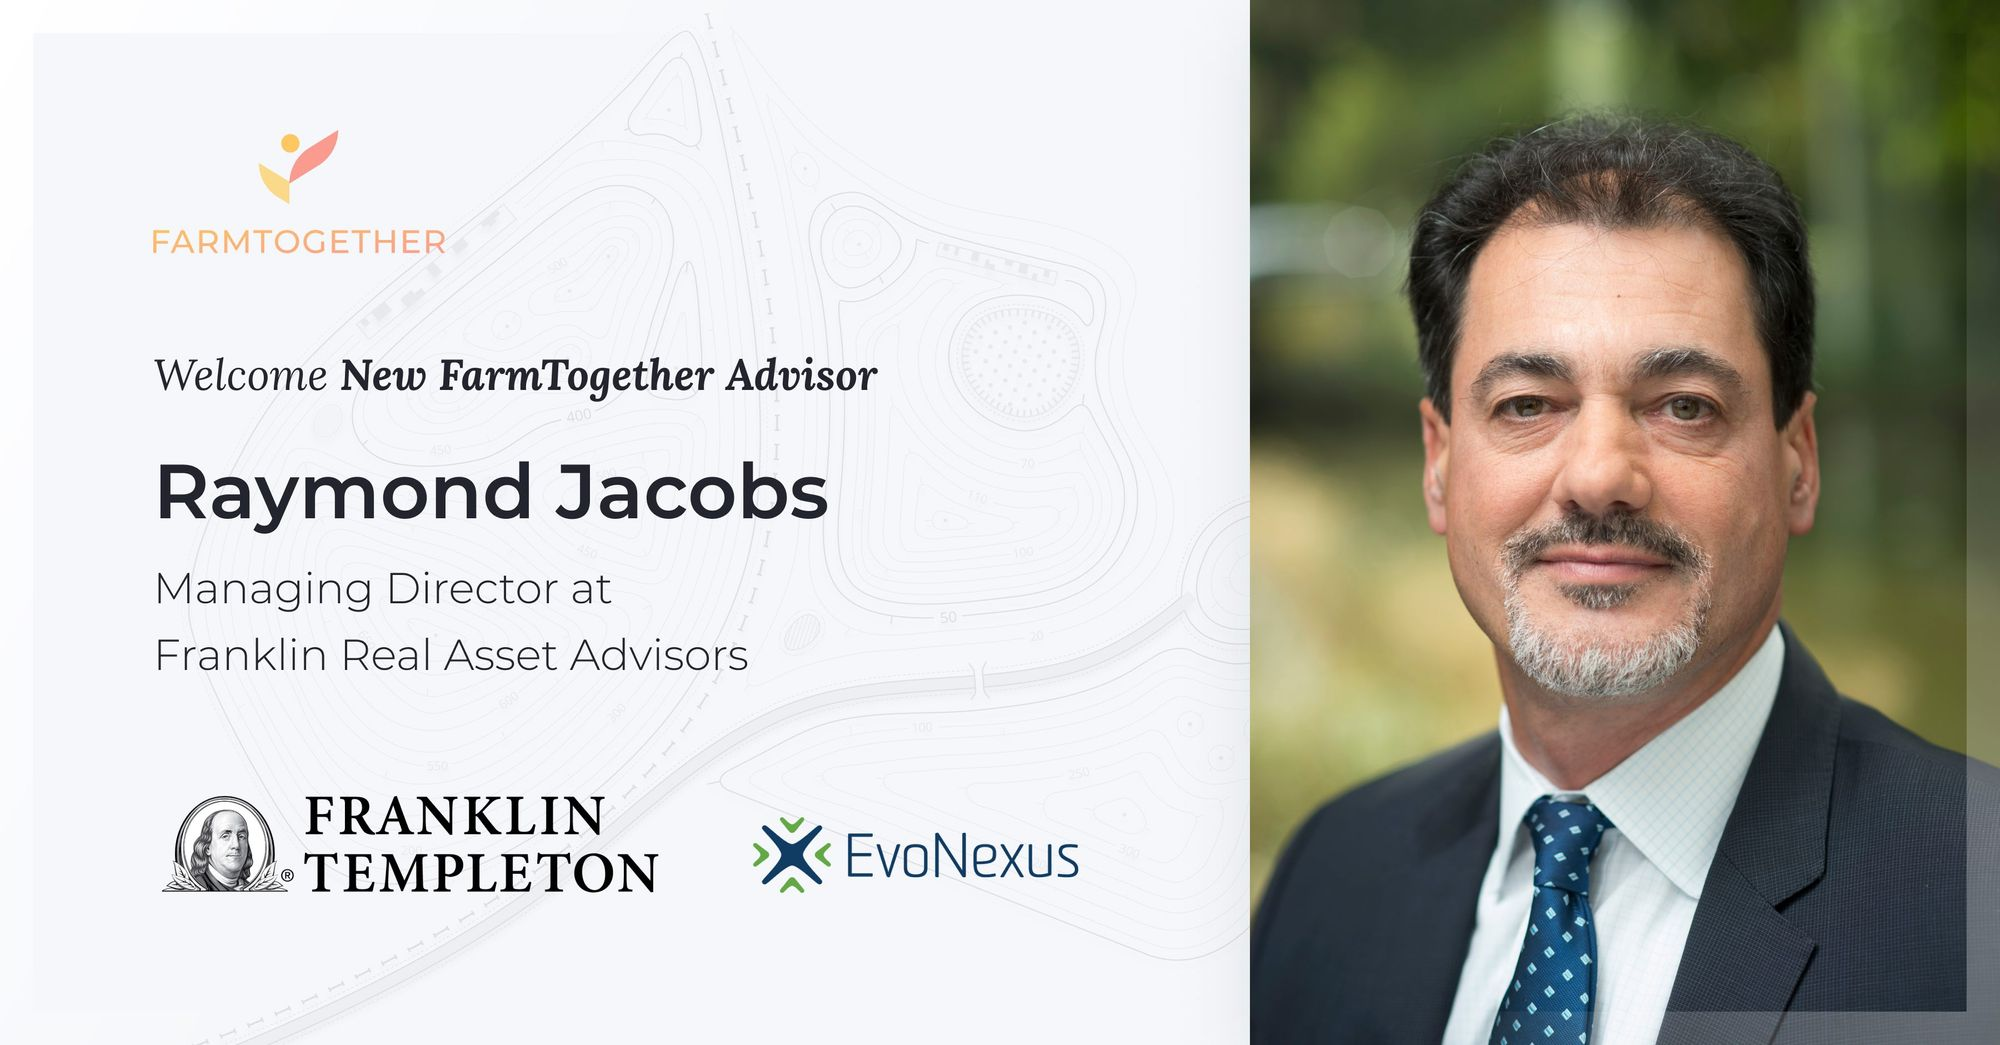 Welcome new FarmTogether advisor - Raymond Jacobs, Managing Director at Franklin Real Asset Advisors at Franklin Templeton.